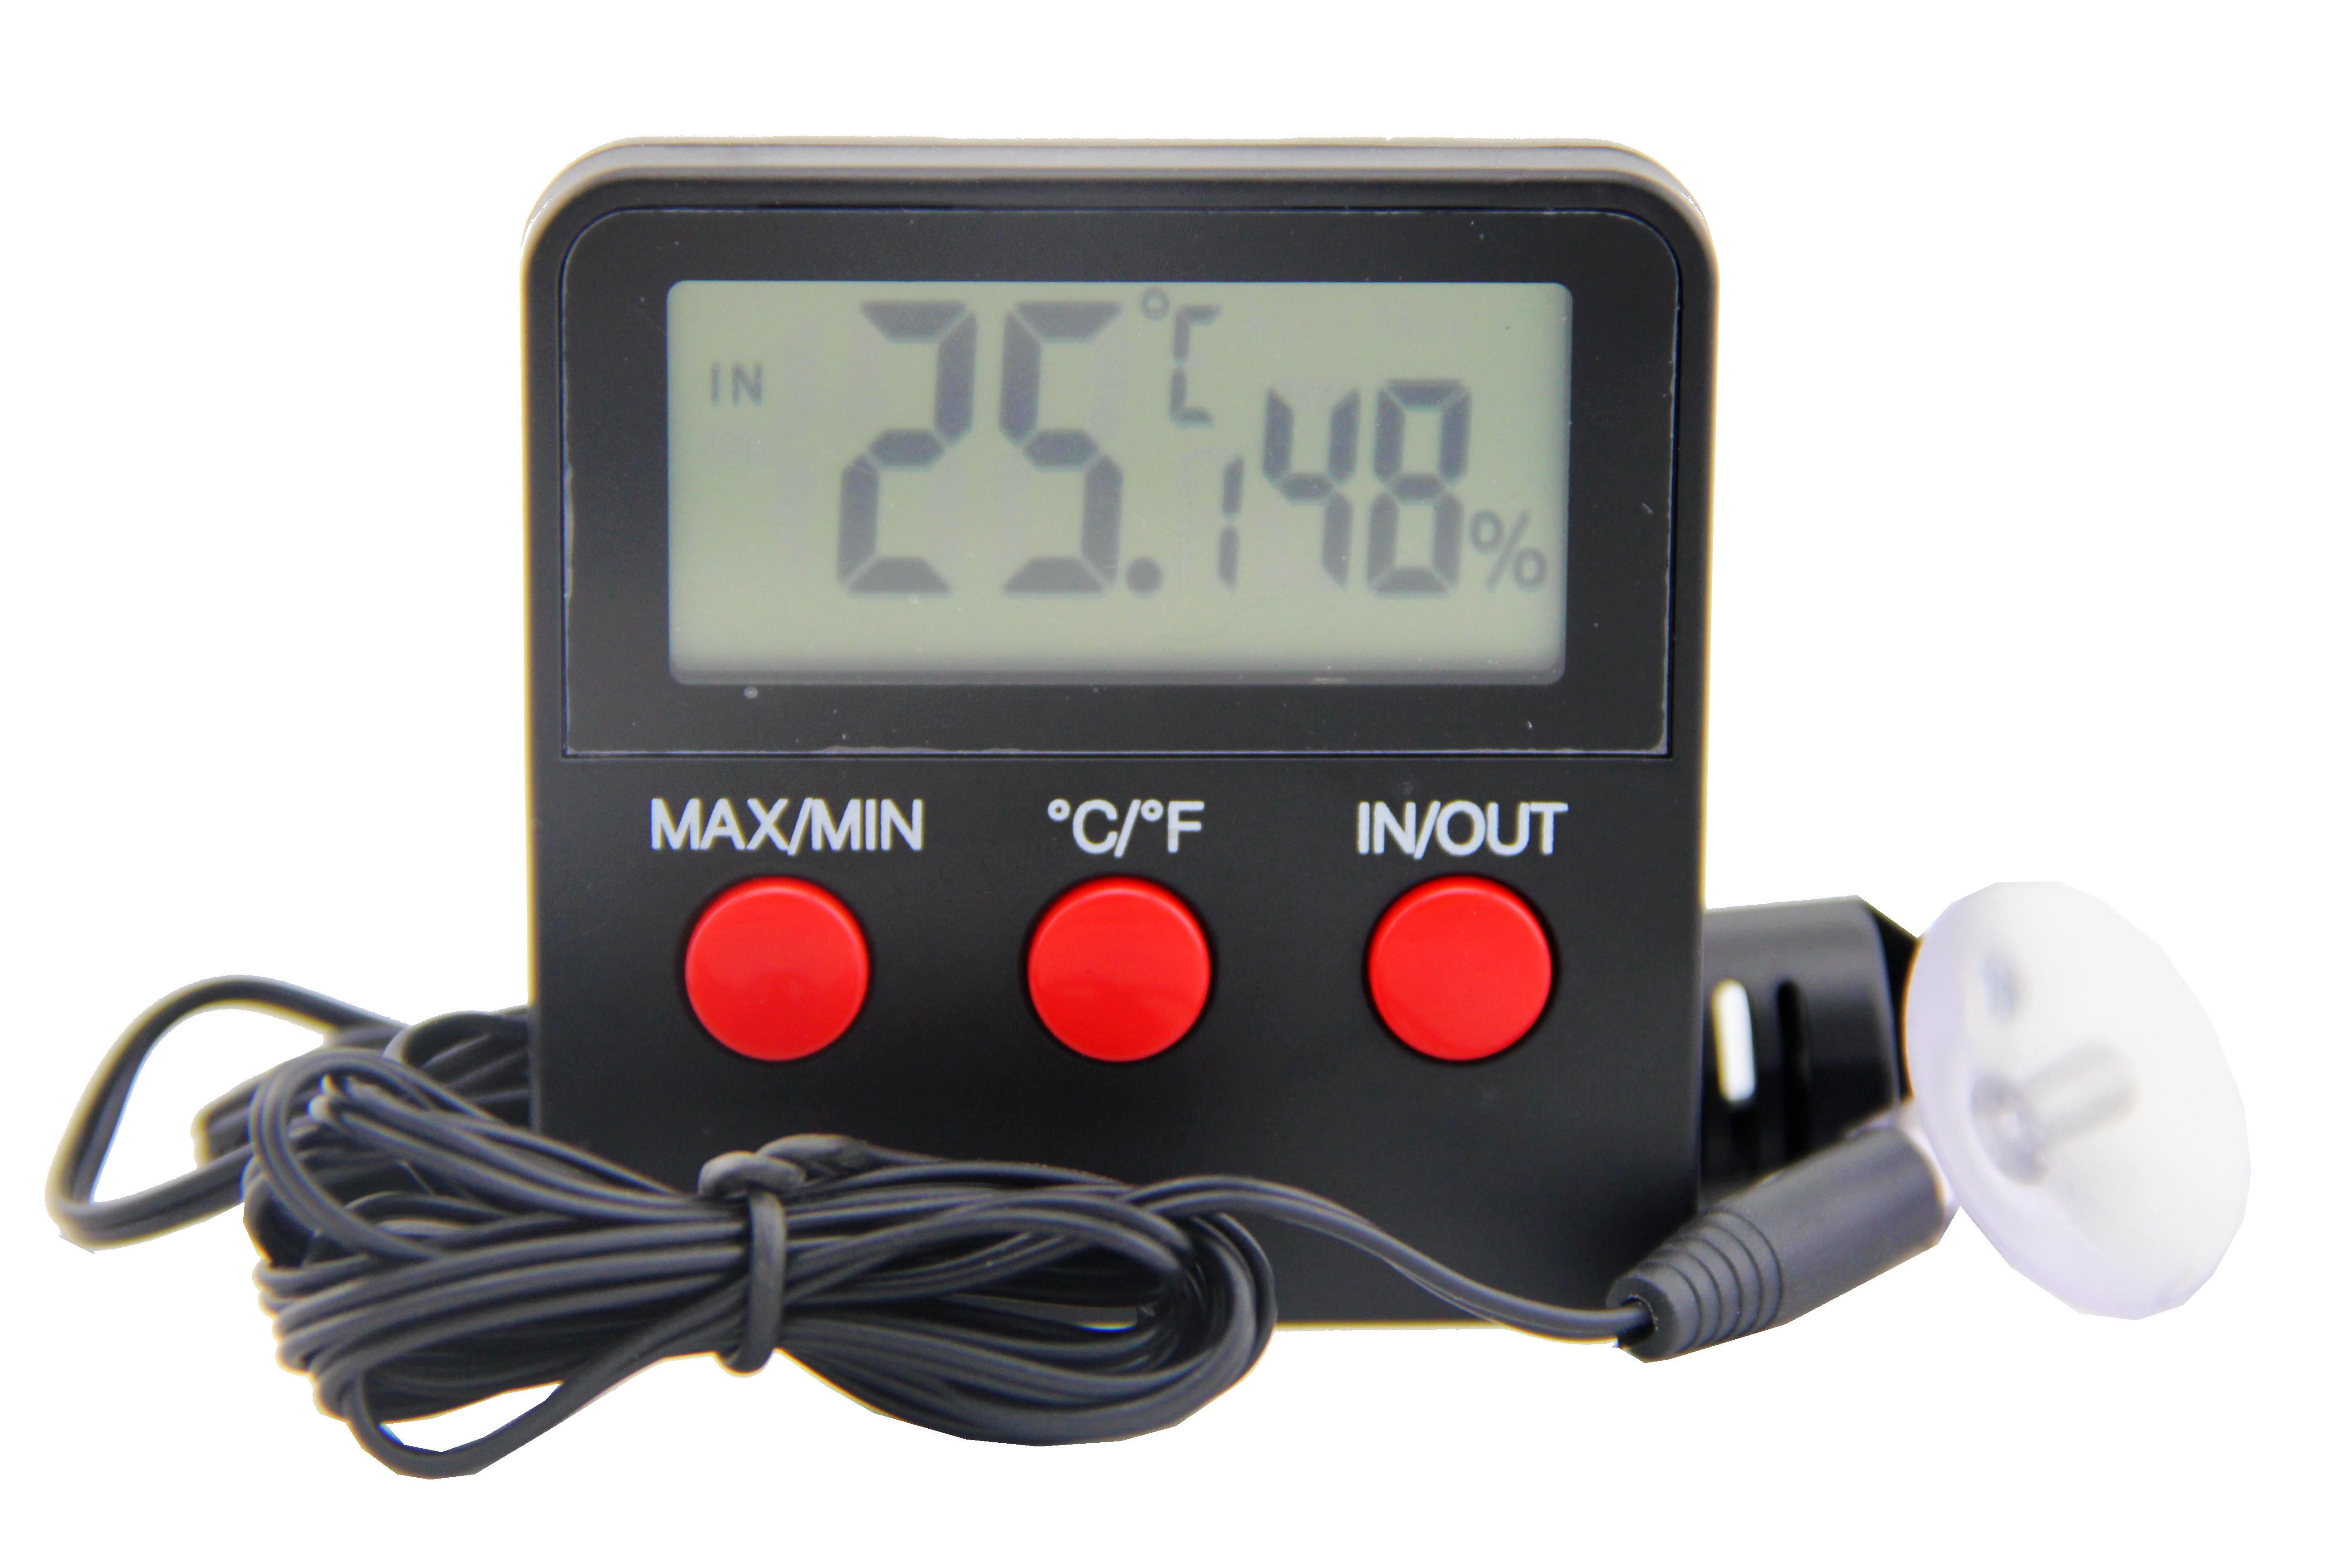 This Digital Thermometer Hygrometer Min Max With A Large Display